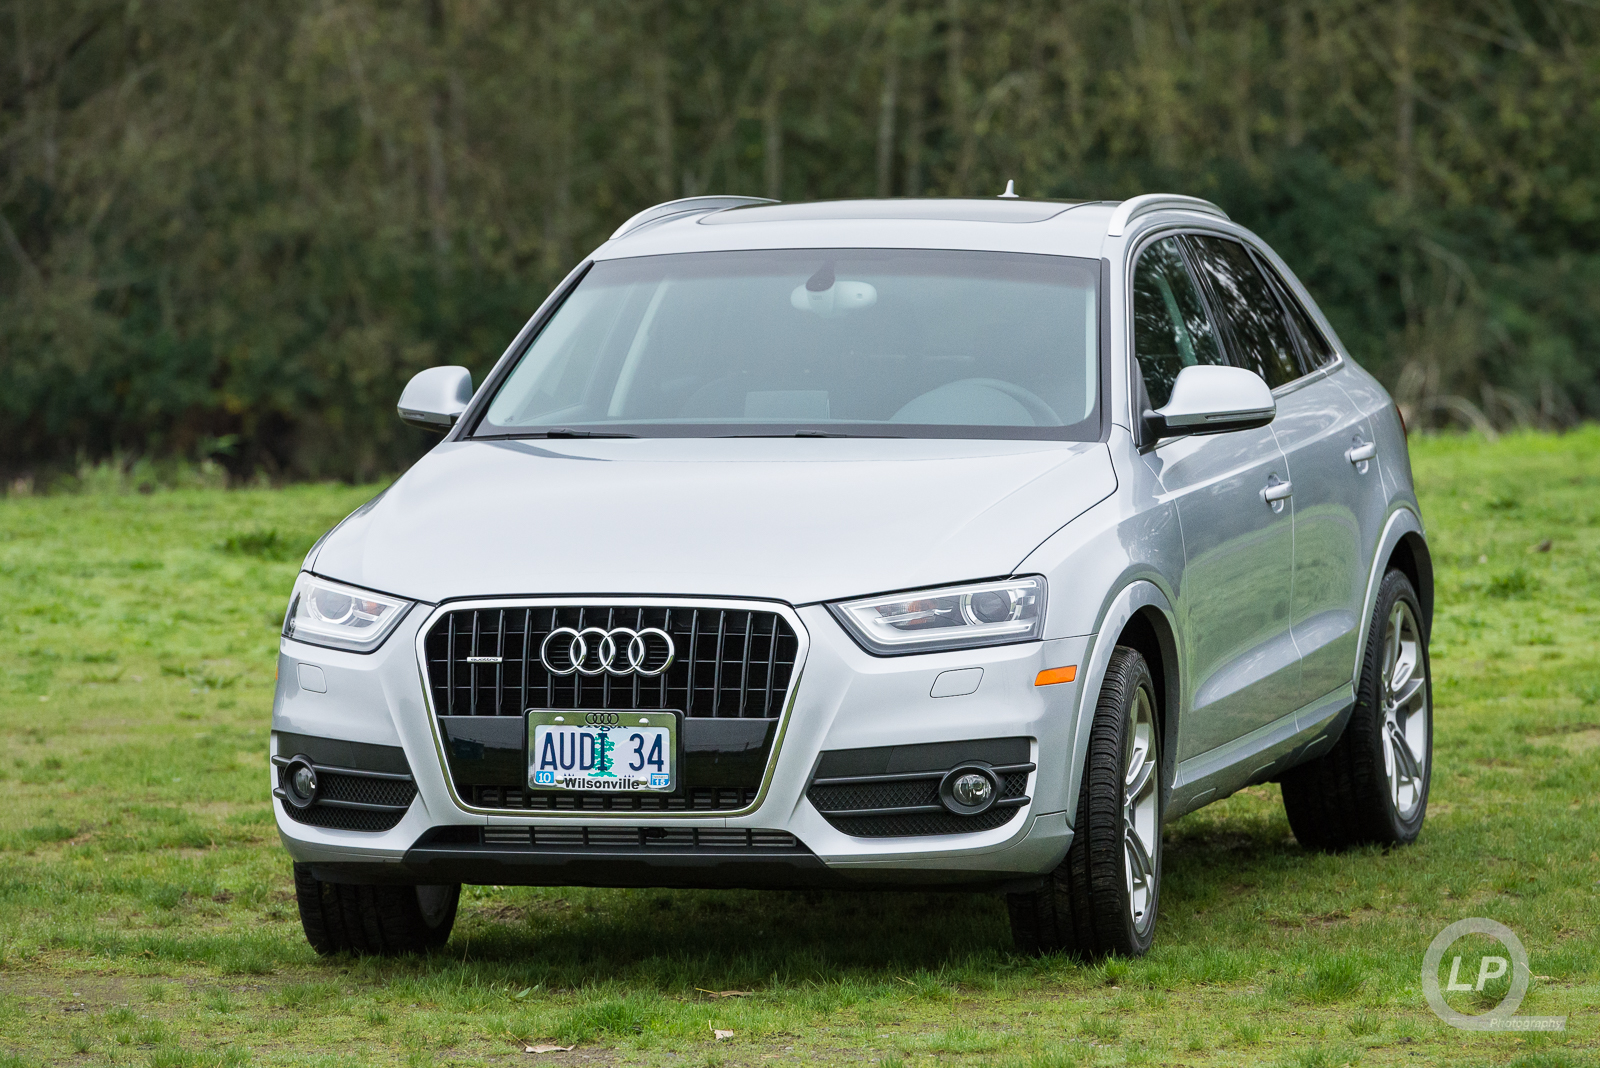 Audi Q3 parked in the grass at PIR